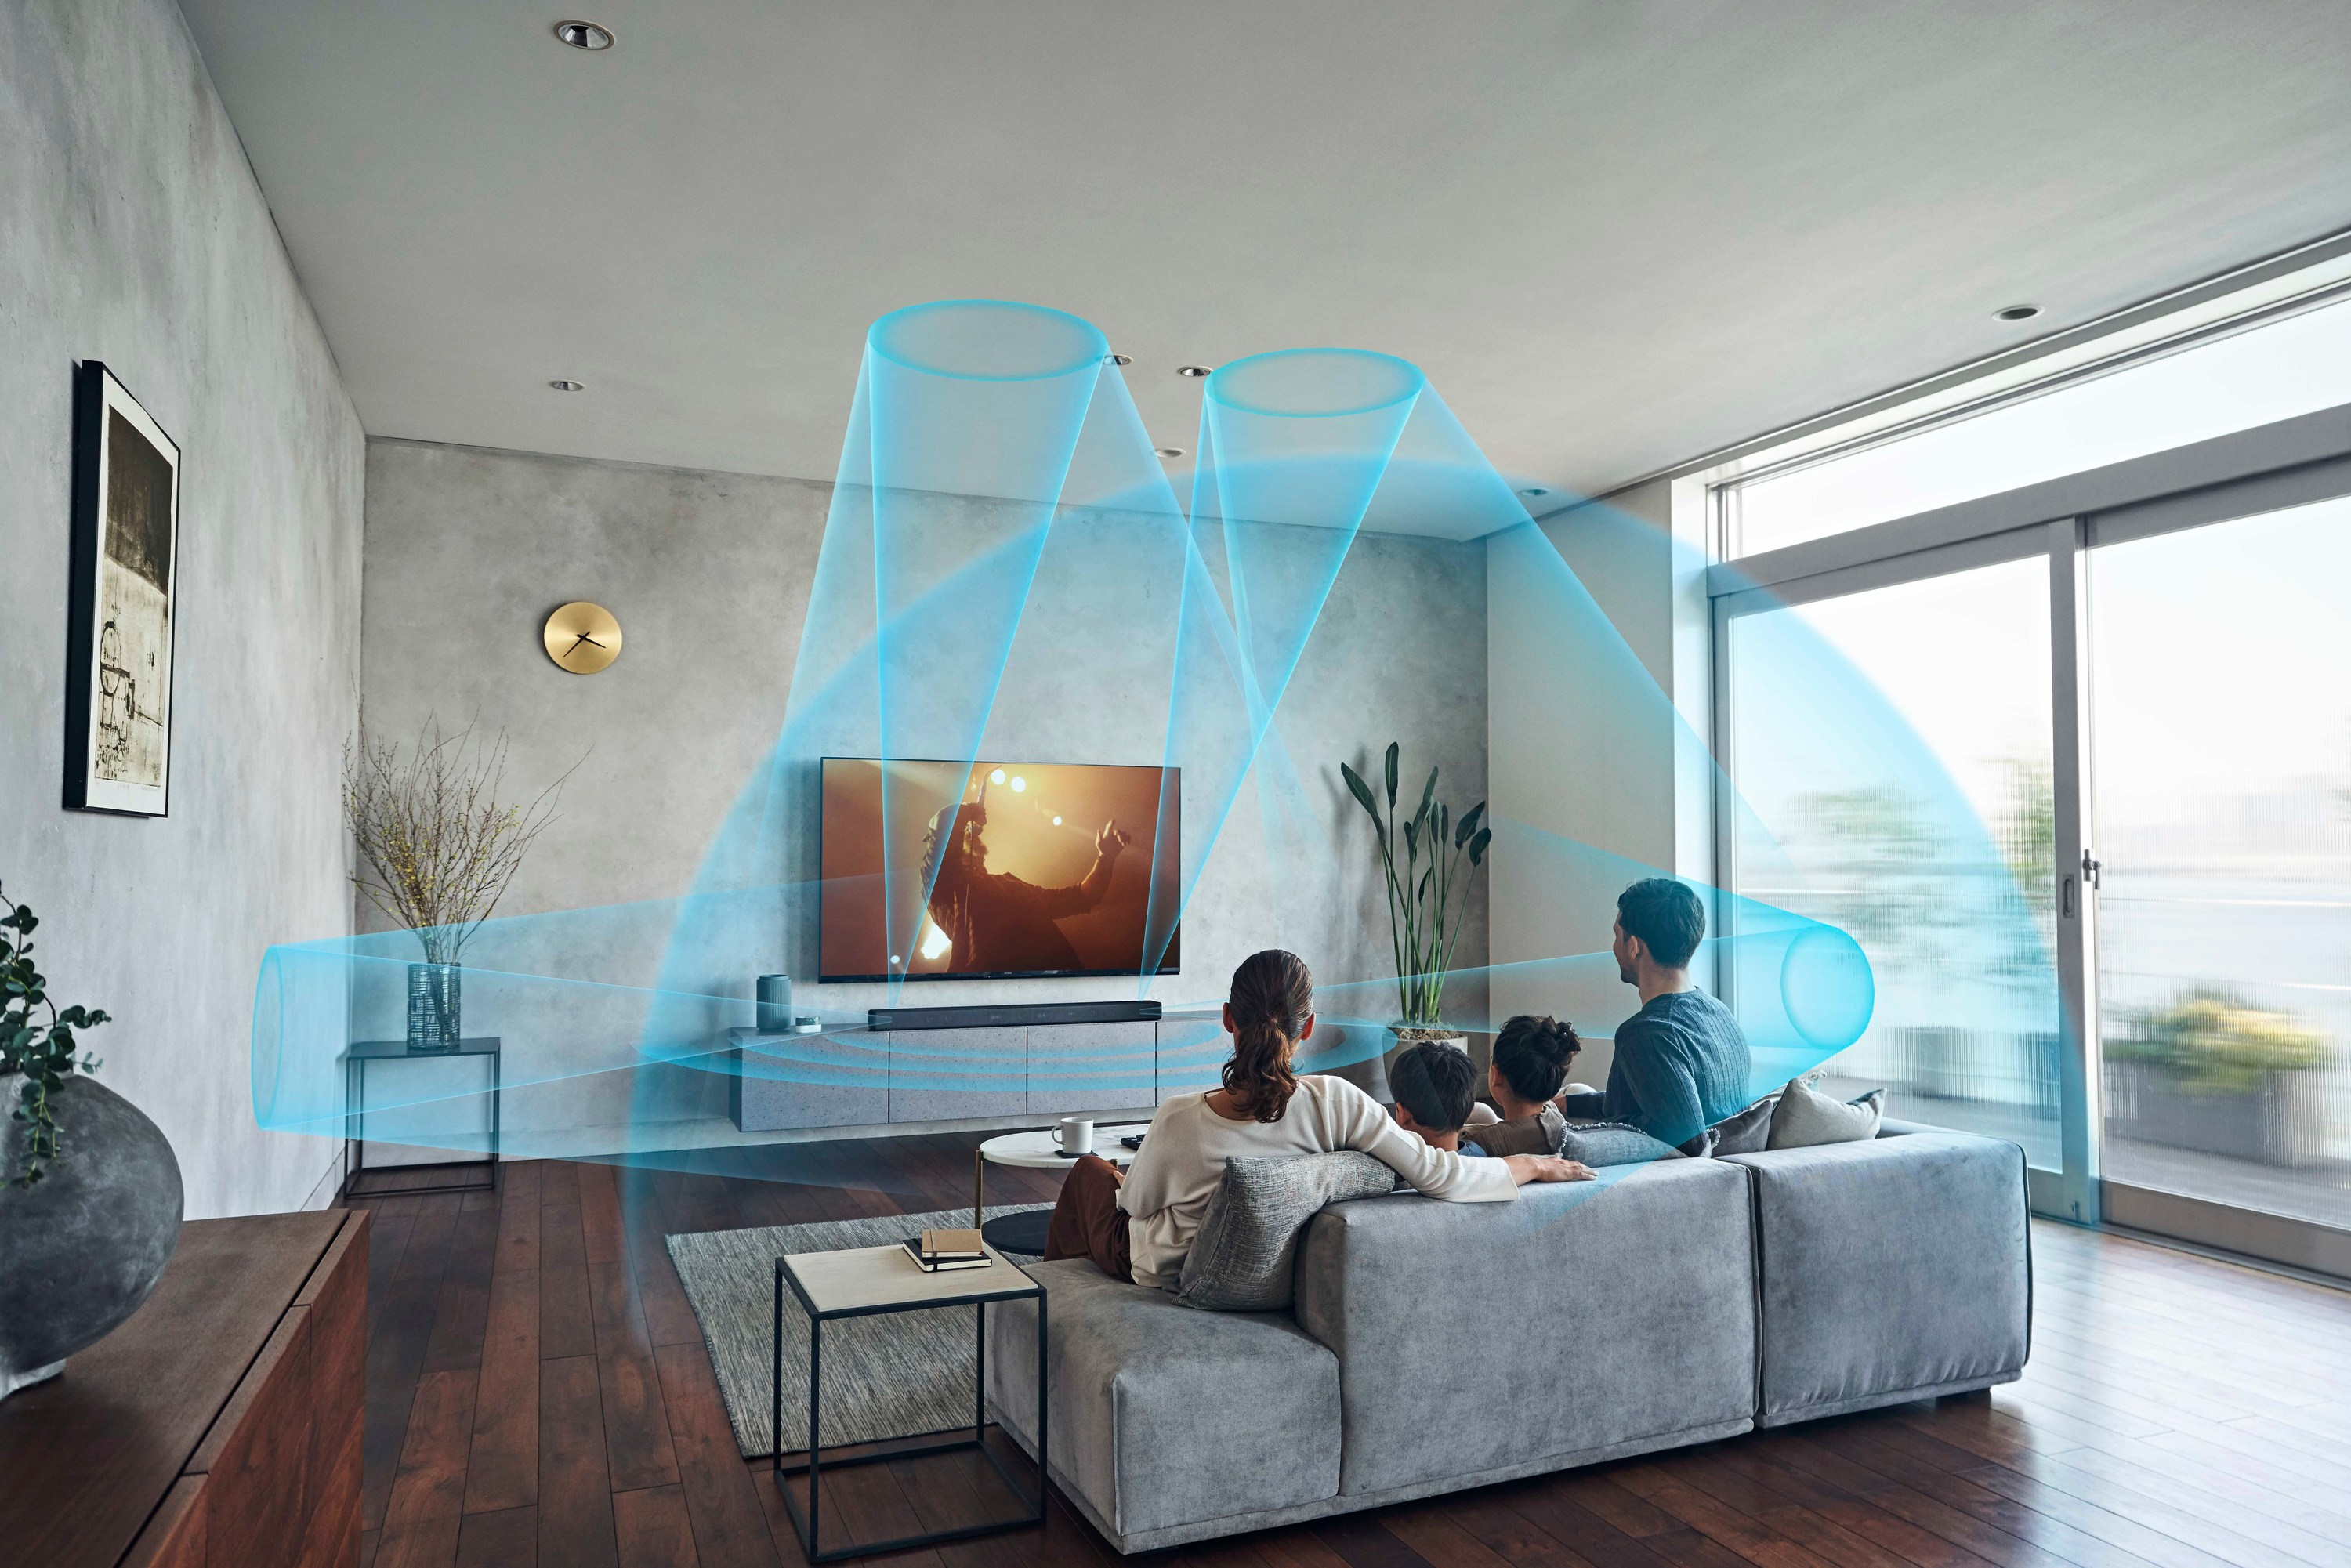 Sony Raises the Bar for Best-in-Class Surround Sound  with new HT-A9 and Flagship HT-A7000 Home Theater Systems